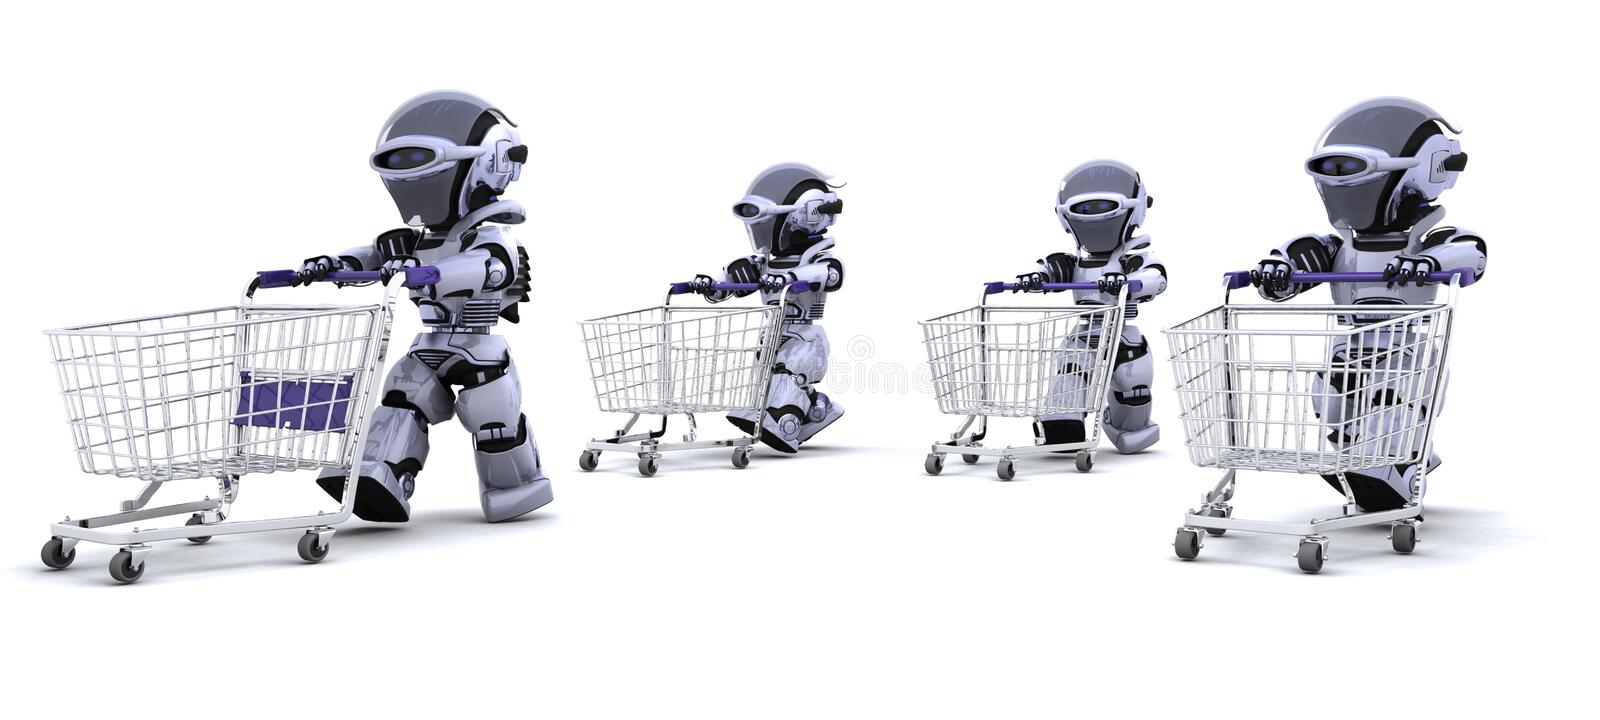 Robots running with shopping carts vector illustration